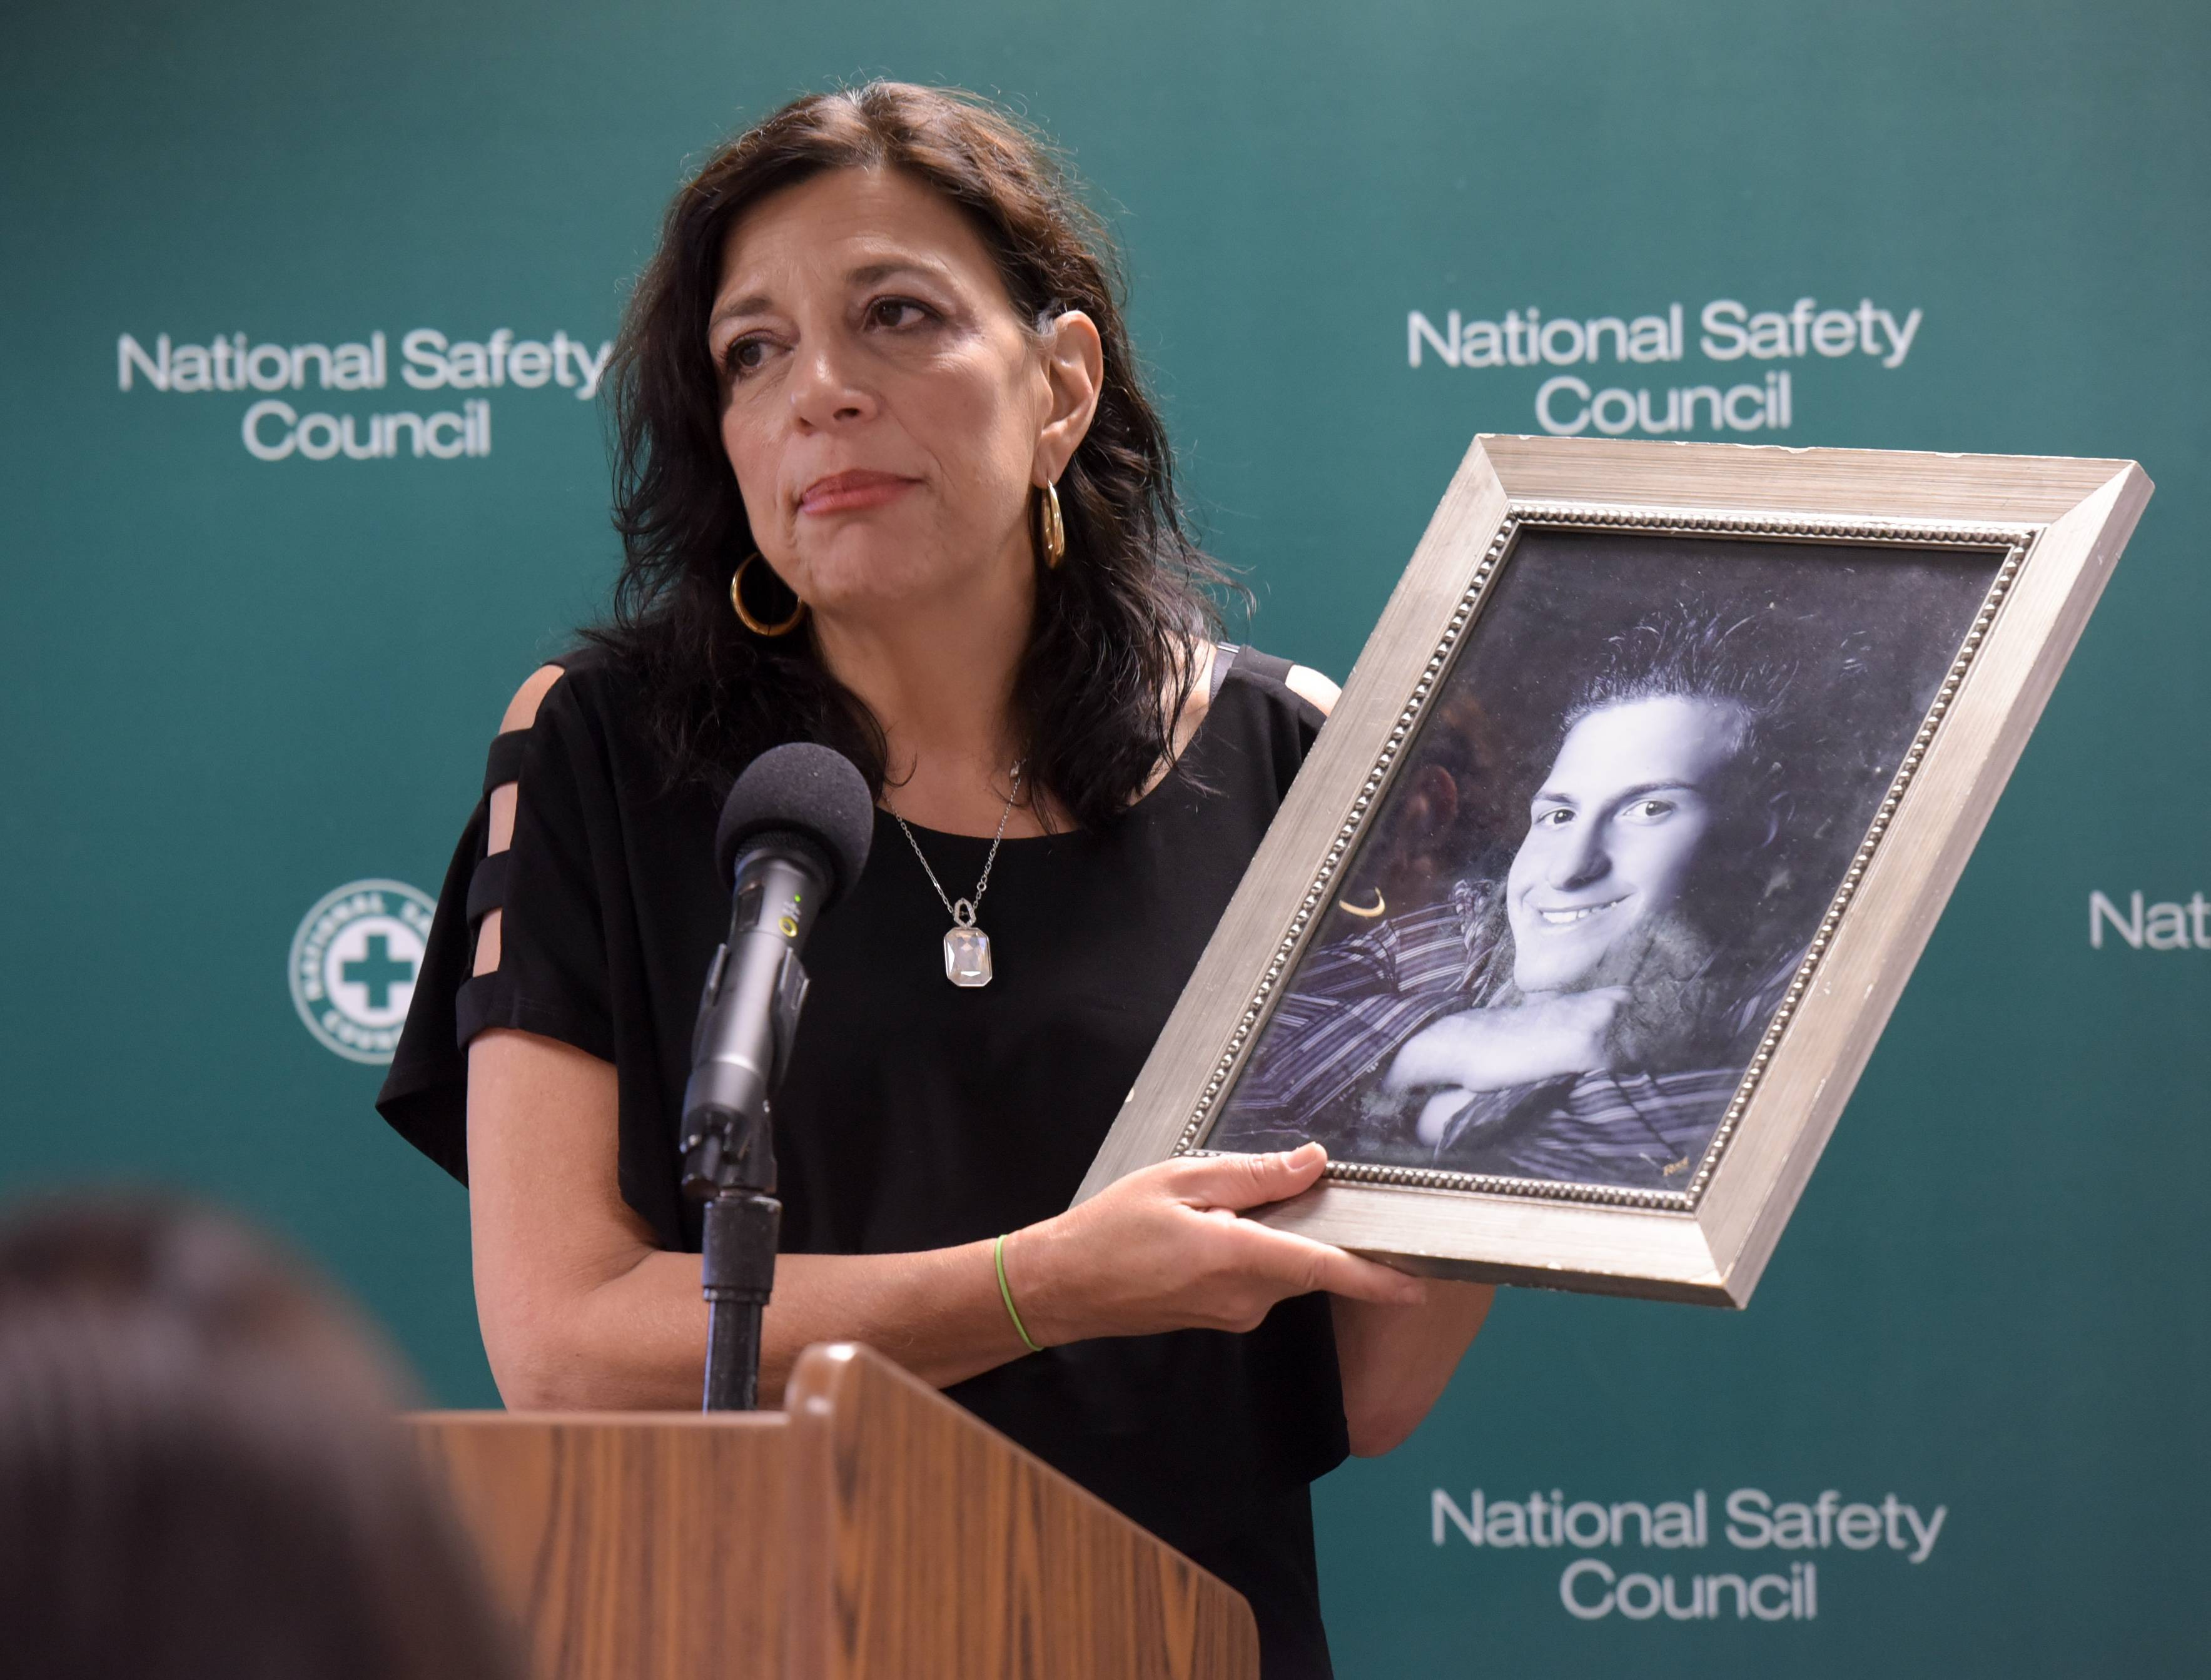 Mark Black/mblack@dailyherald.com Felicia Miceli of Medinah holds a photograph of her late son, Louie, who died of an overdose. She spoke during a Thursday news conference at the National Safety Council's headquarters in Itasca.